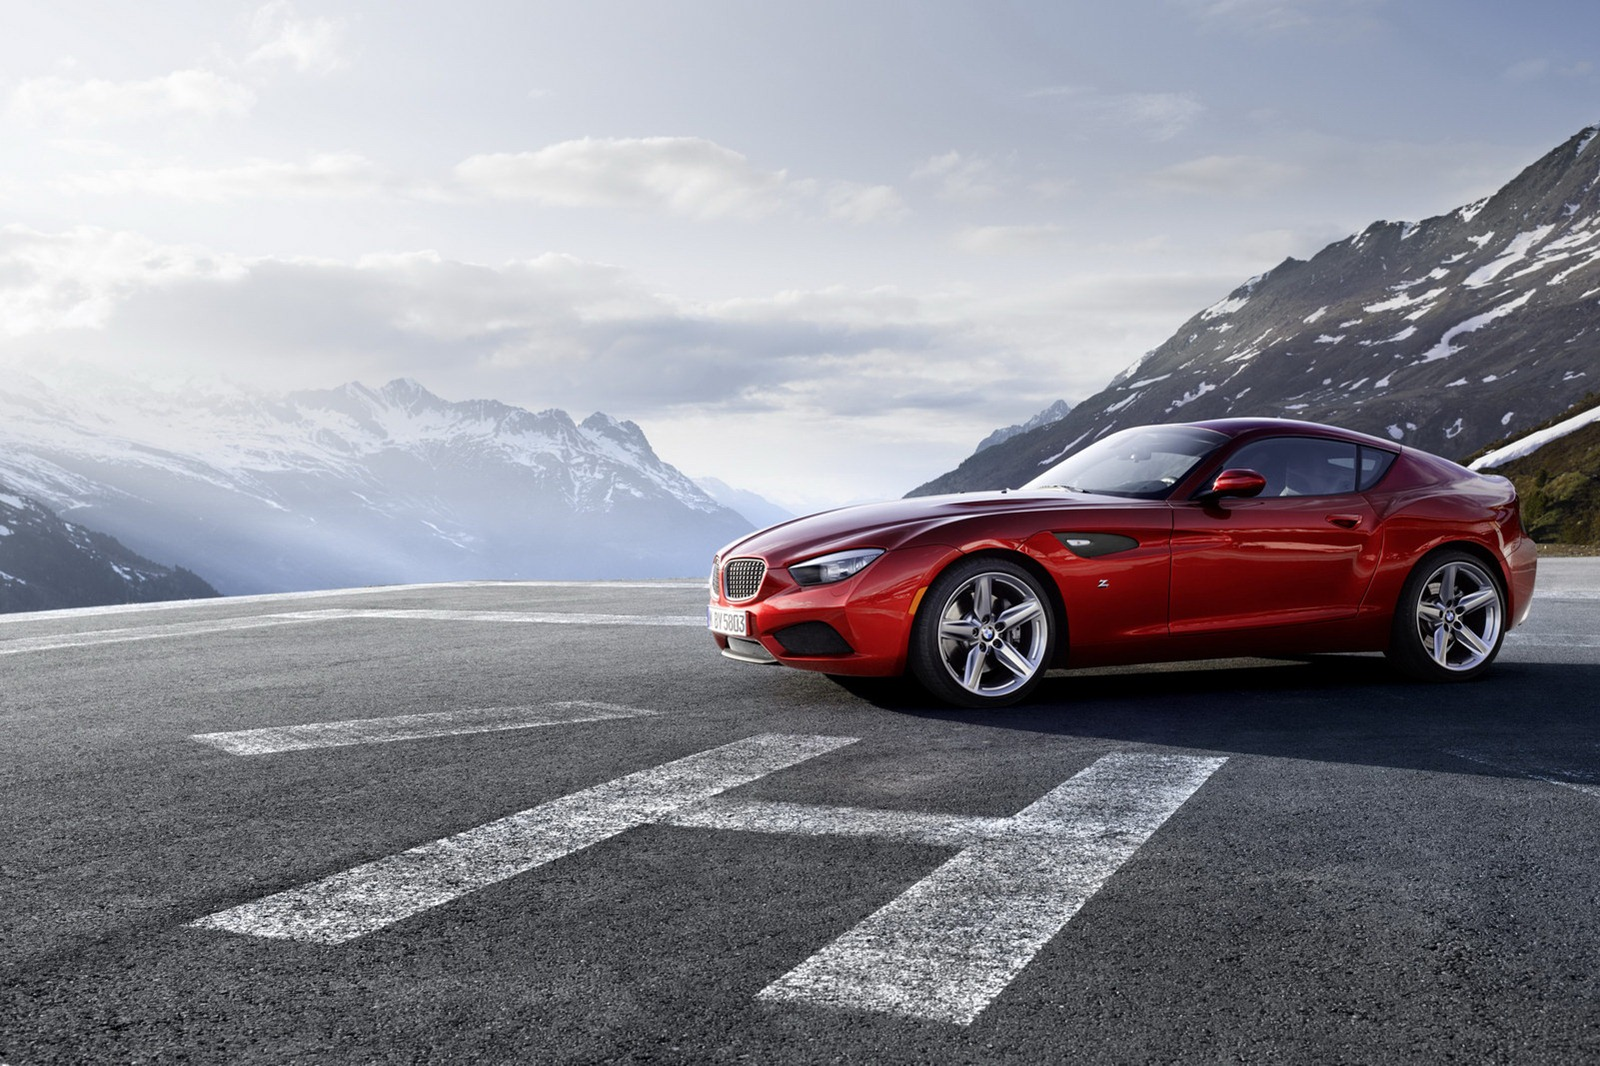 Most Expensive Car Hd Wallpaper Meet The Best Looking Modern Bmw The Z4 Zagato